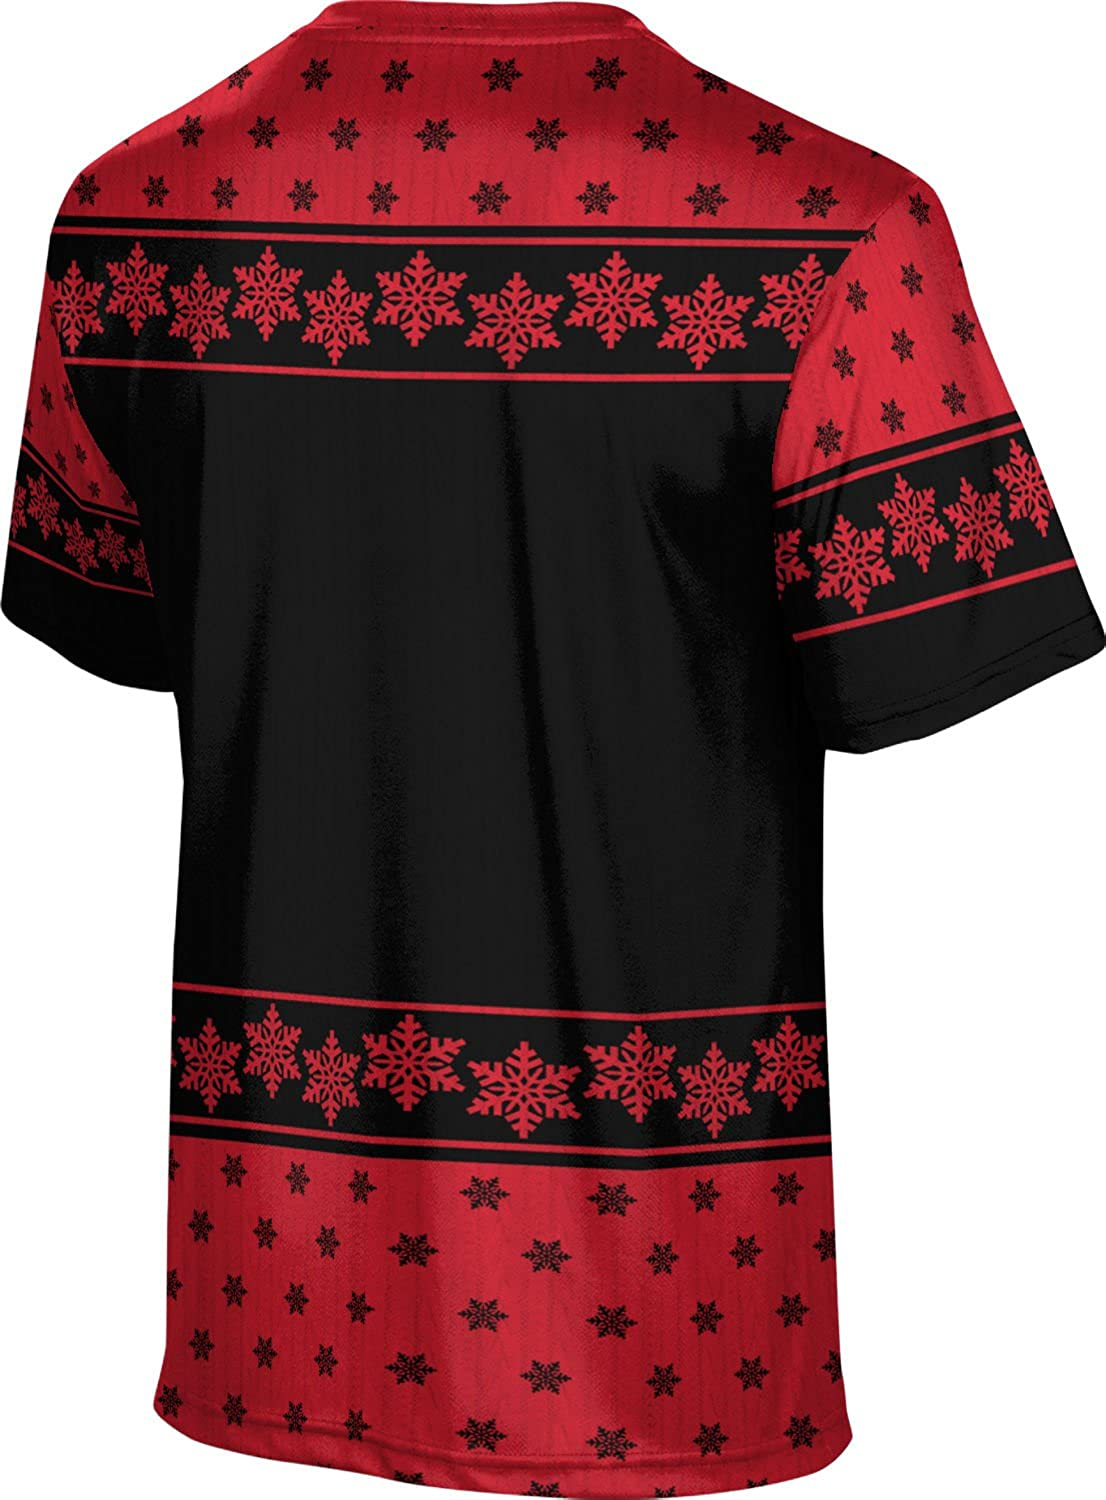 University of The Incarnate Word Ugly Holiday Mens Performance T-Shirt Snowflake